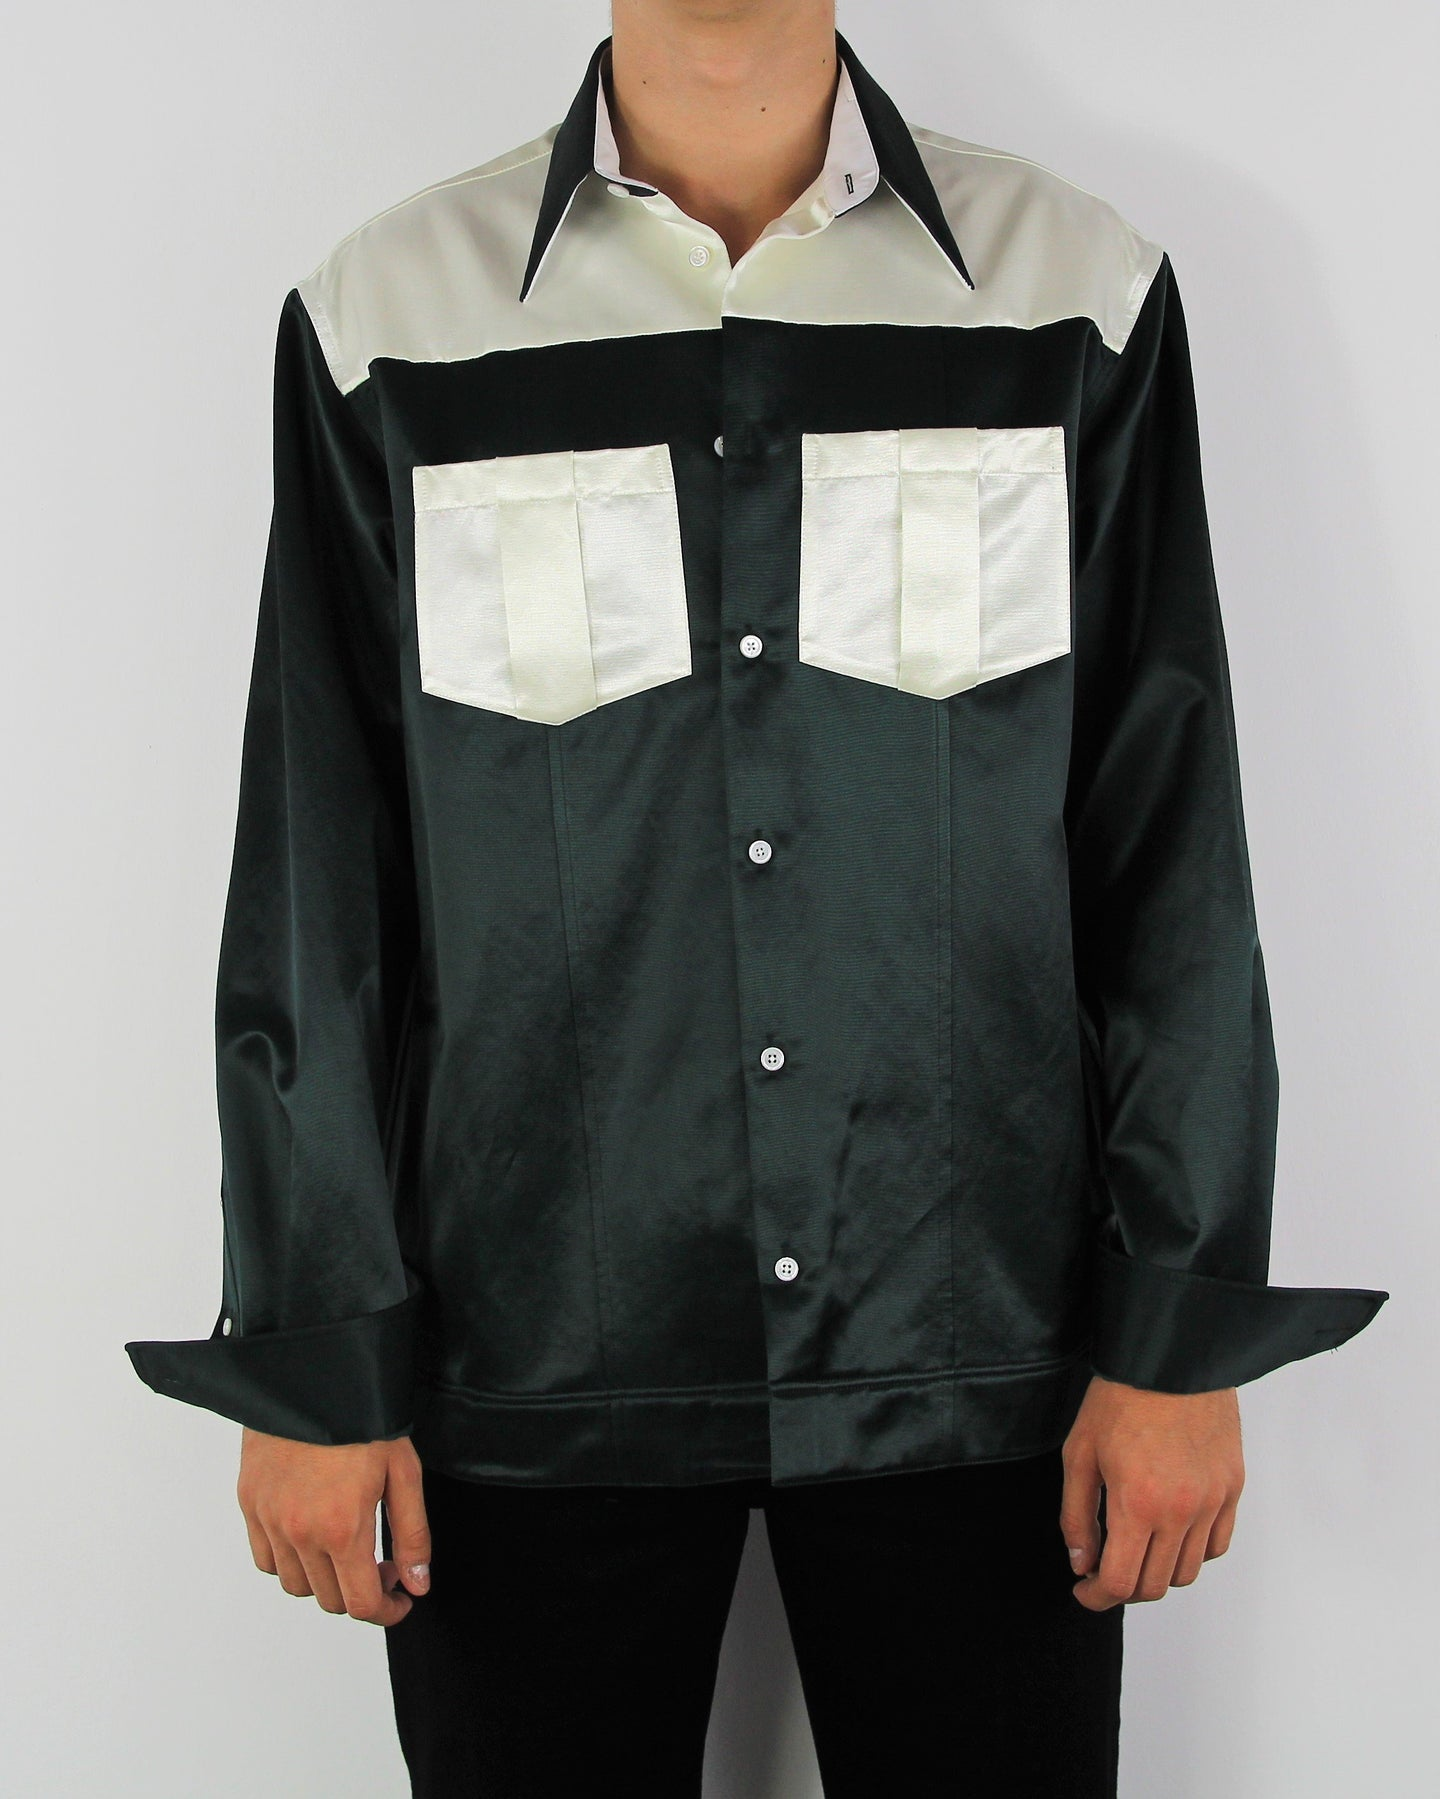 Forrest Green Satin Western Shirt